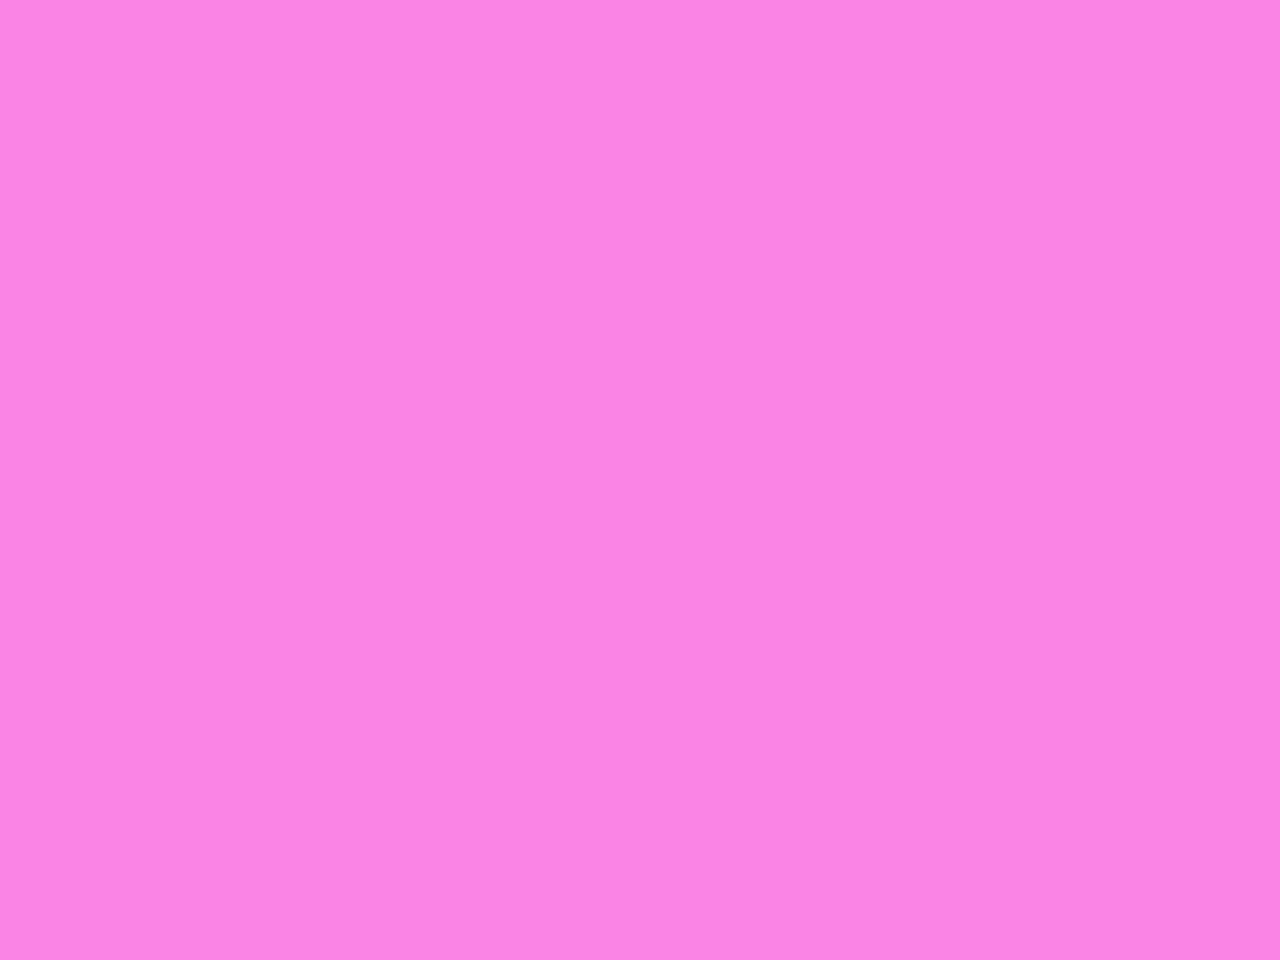 1280x960 Pale Magenta Solid Color Background